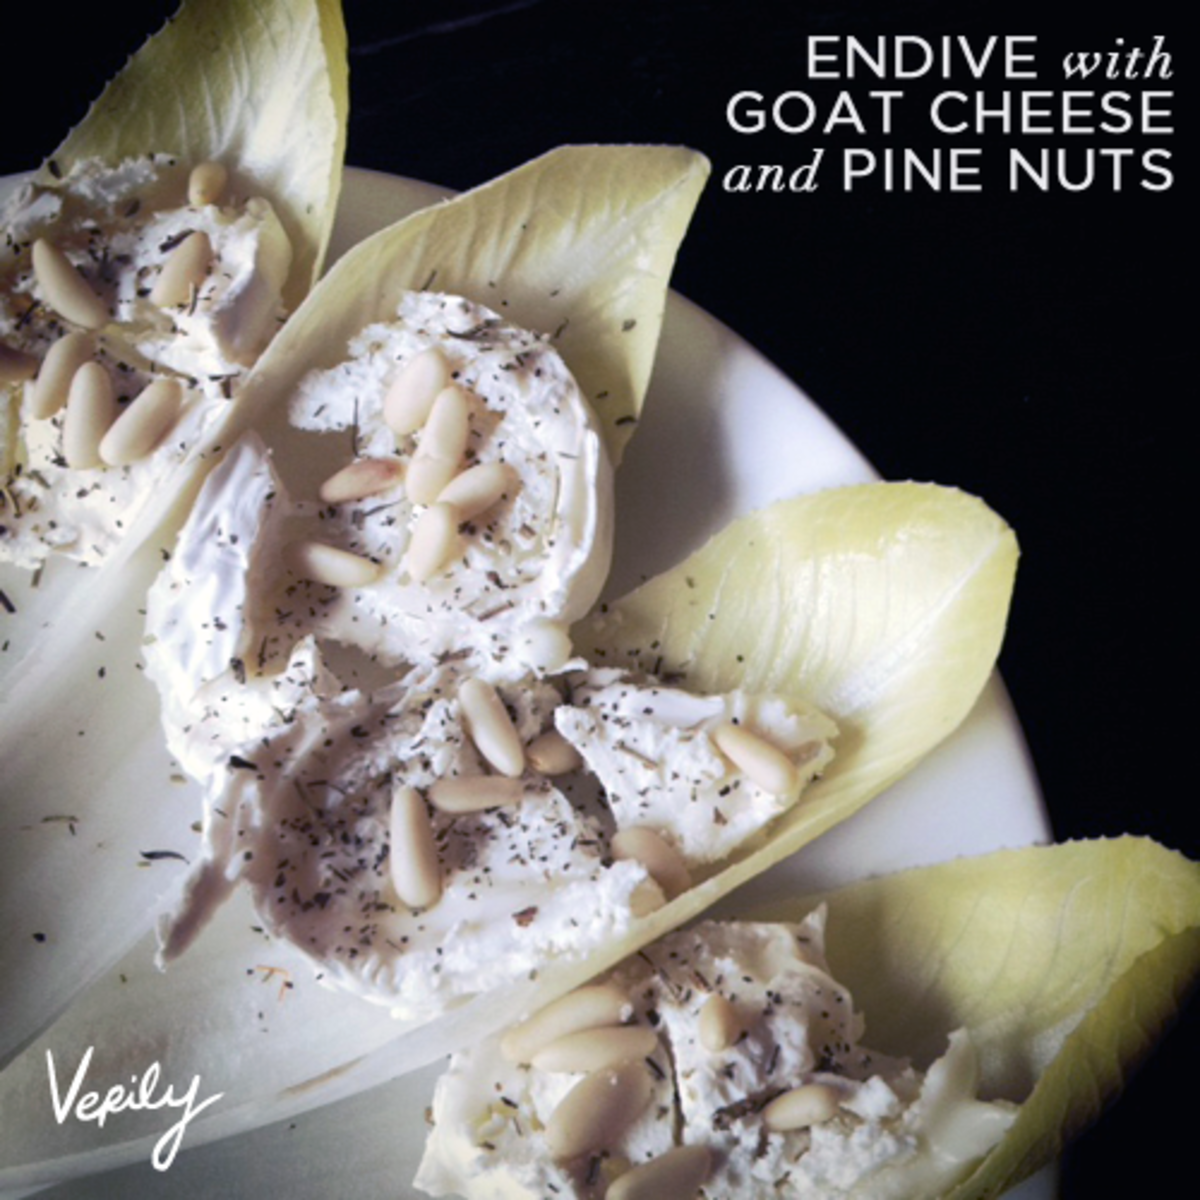 Verily Magazine Endive